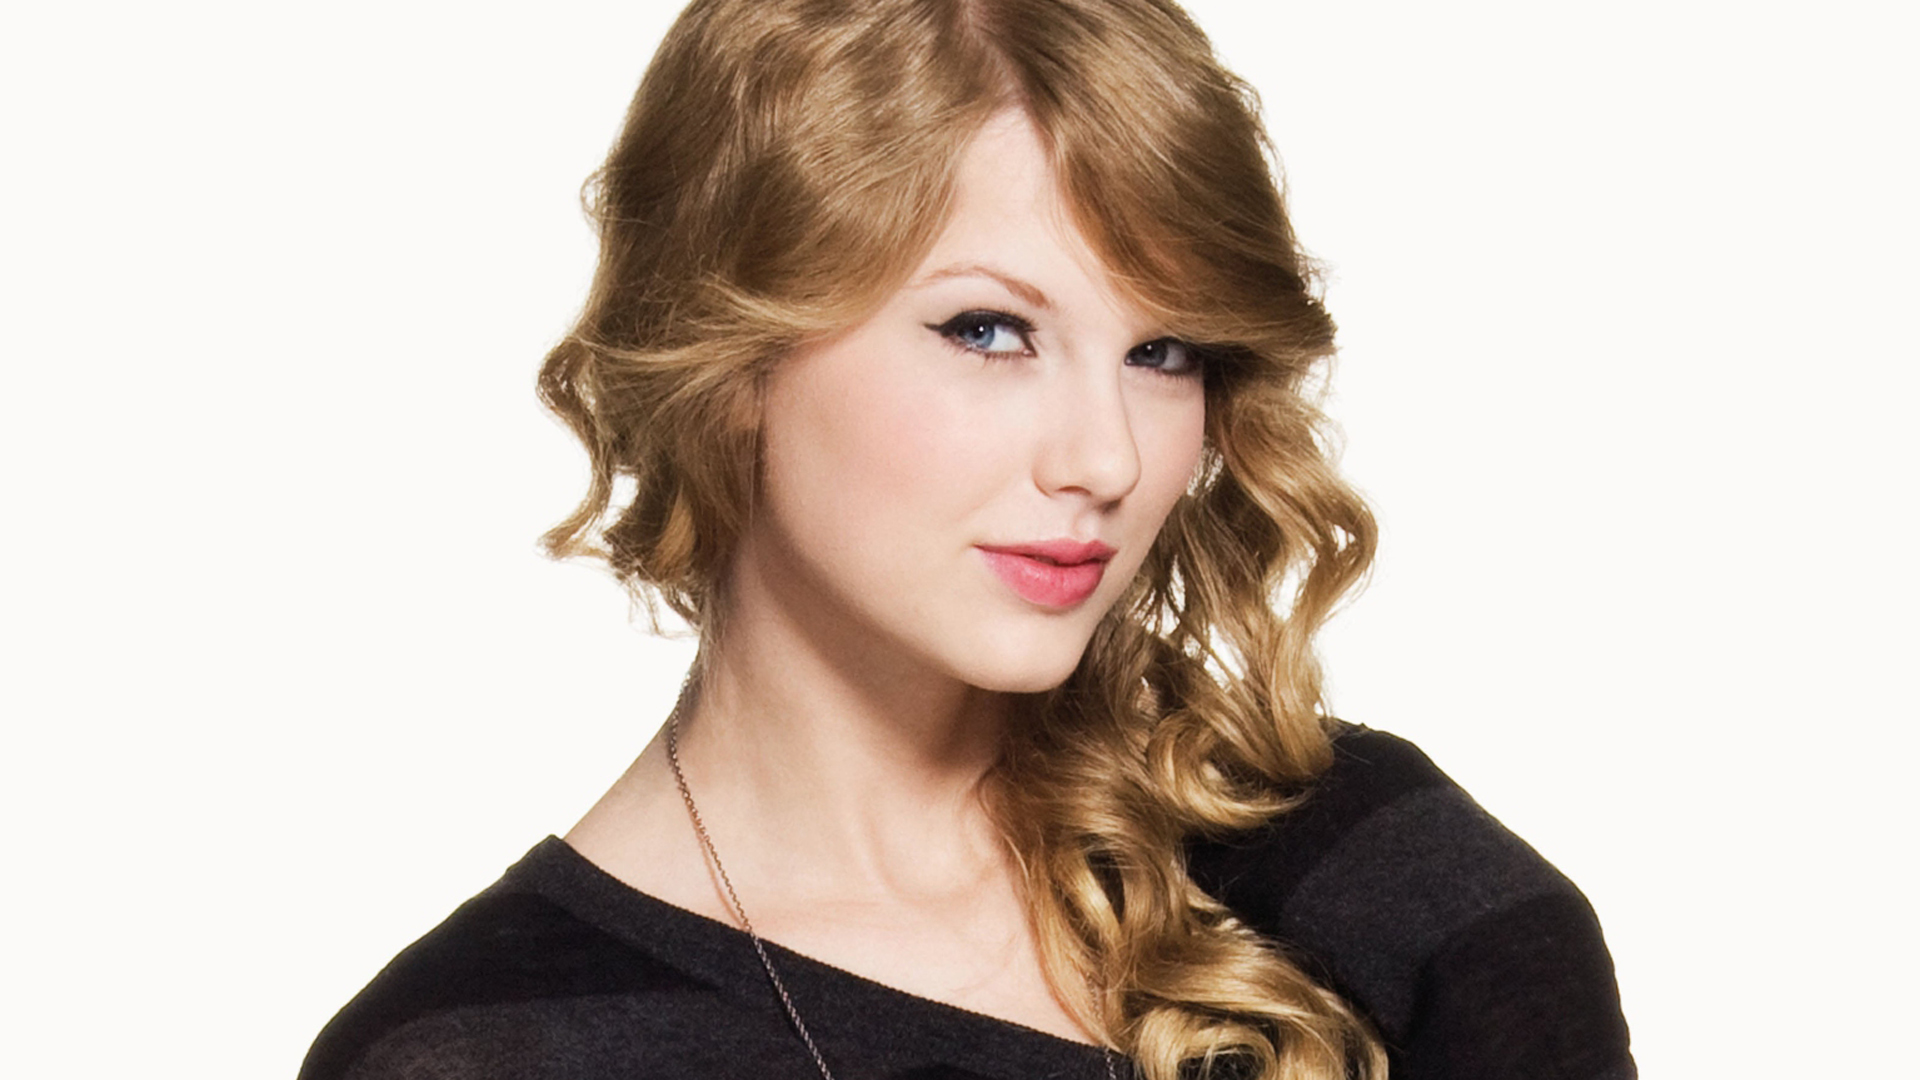 Taylor Swift Wallpapers   HD HdCoolWallpapersCom 1920x1080